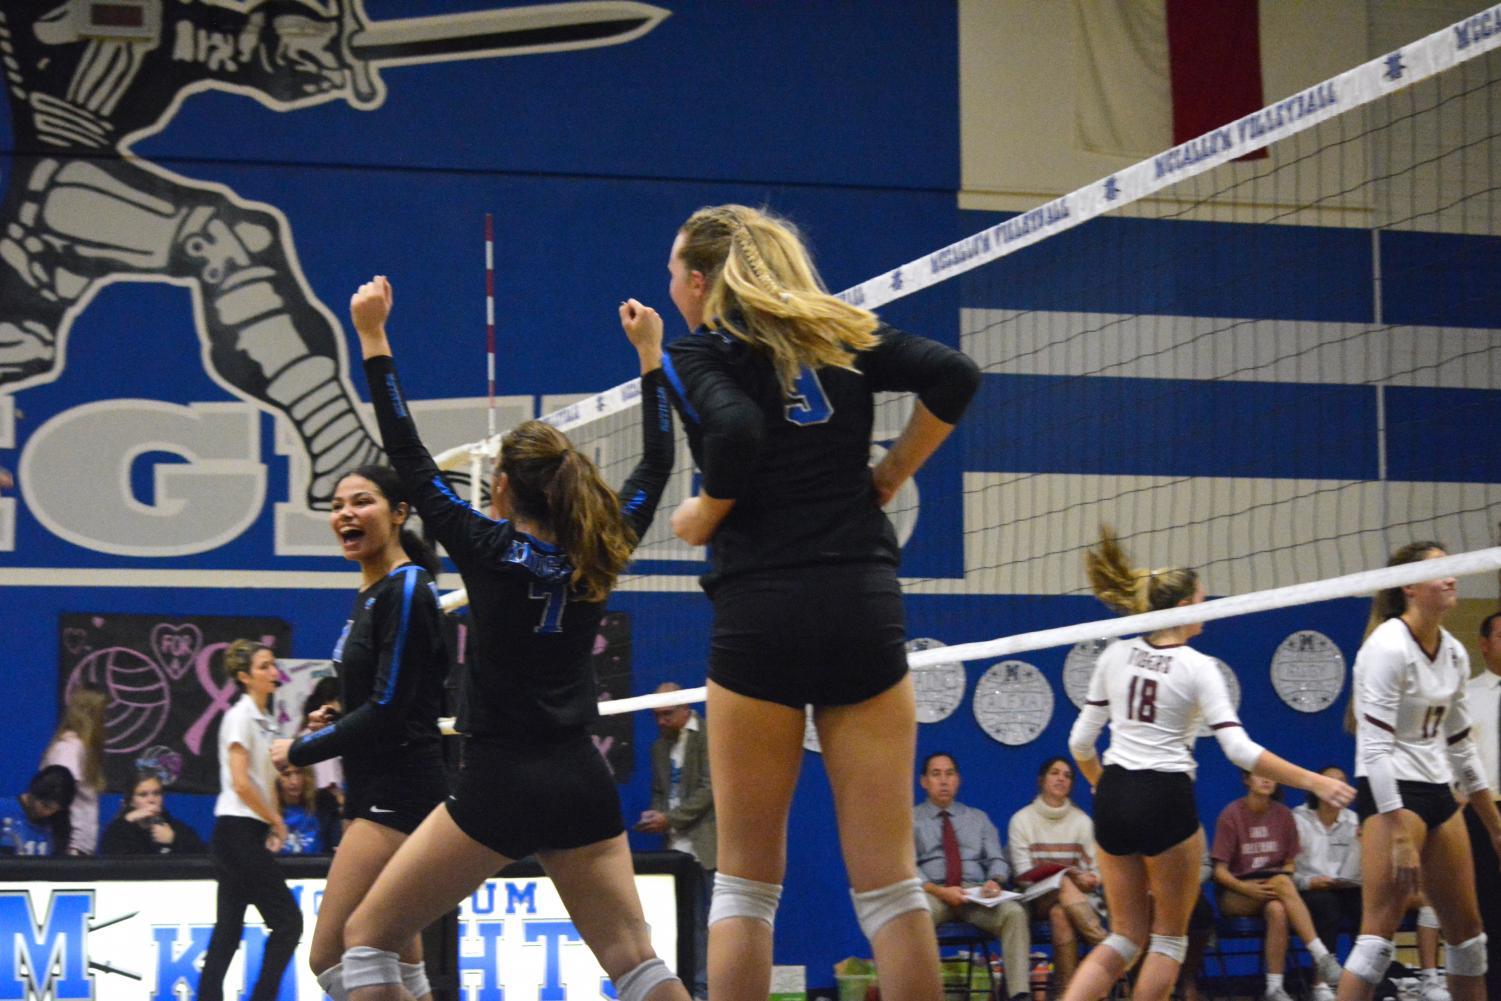 Senior varsity volleyball player Alexa Fannin celebrates winning a point with teammates Shaine Rozman and Grace Werkenthin during the Knights' home loss to Dripping Springs on Oct. 25. The Knights came up short but took solace in how well they placed against such a quality opponent.